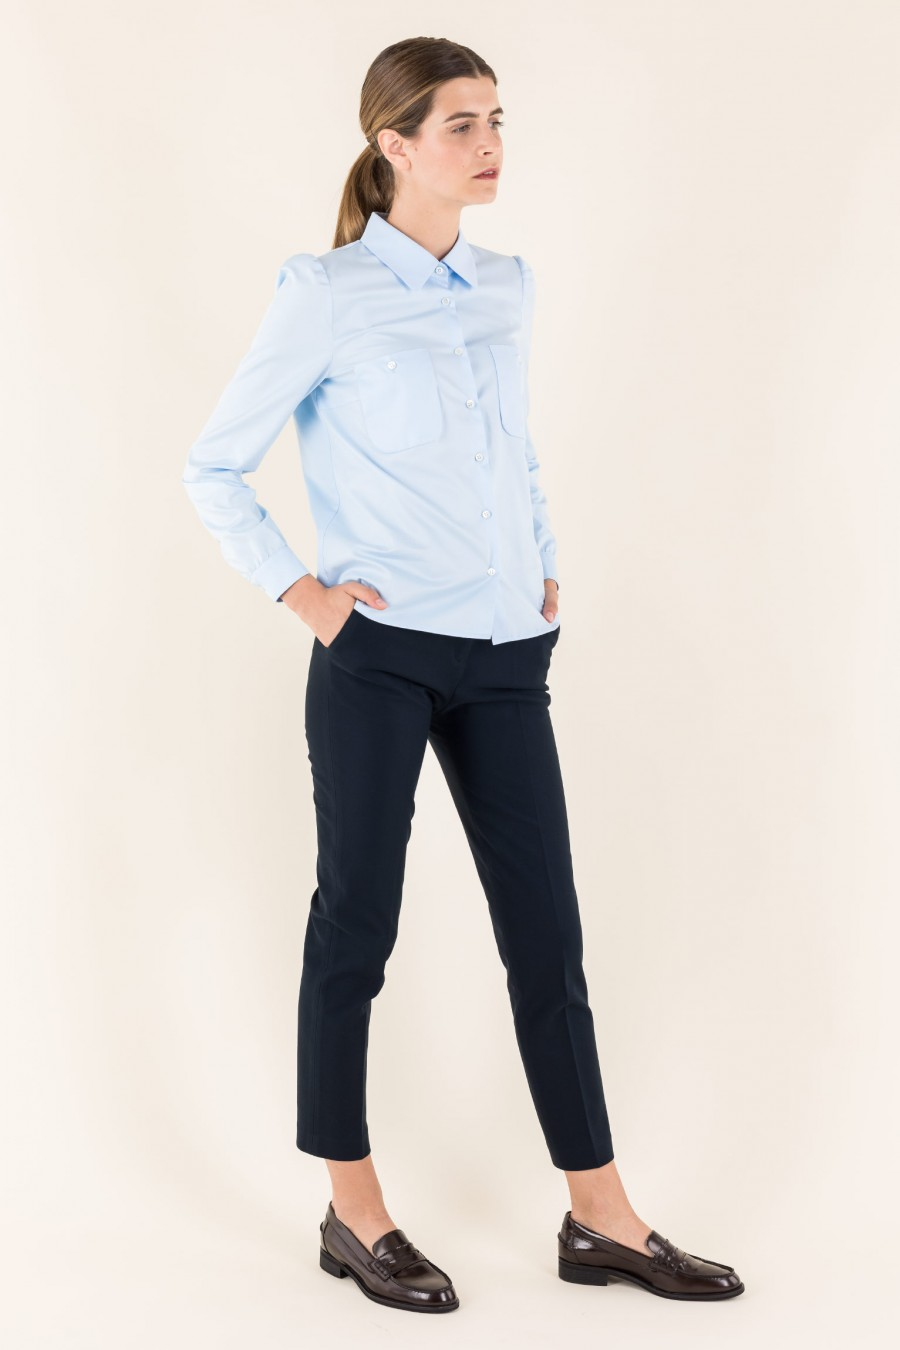 Blue shirt with pockets